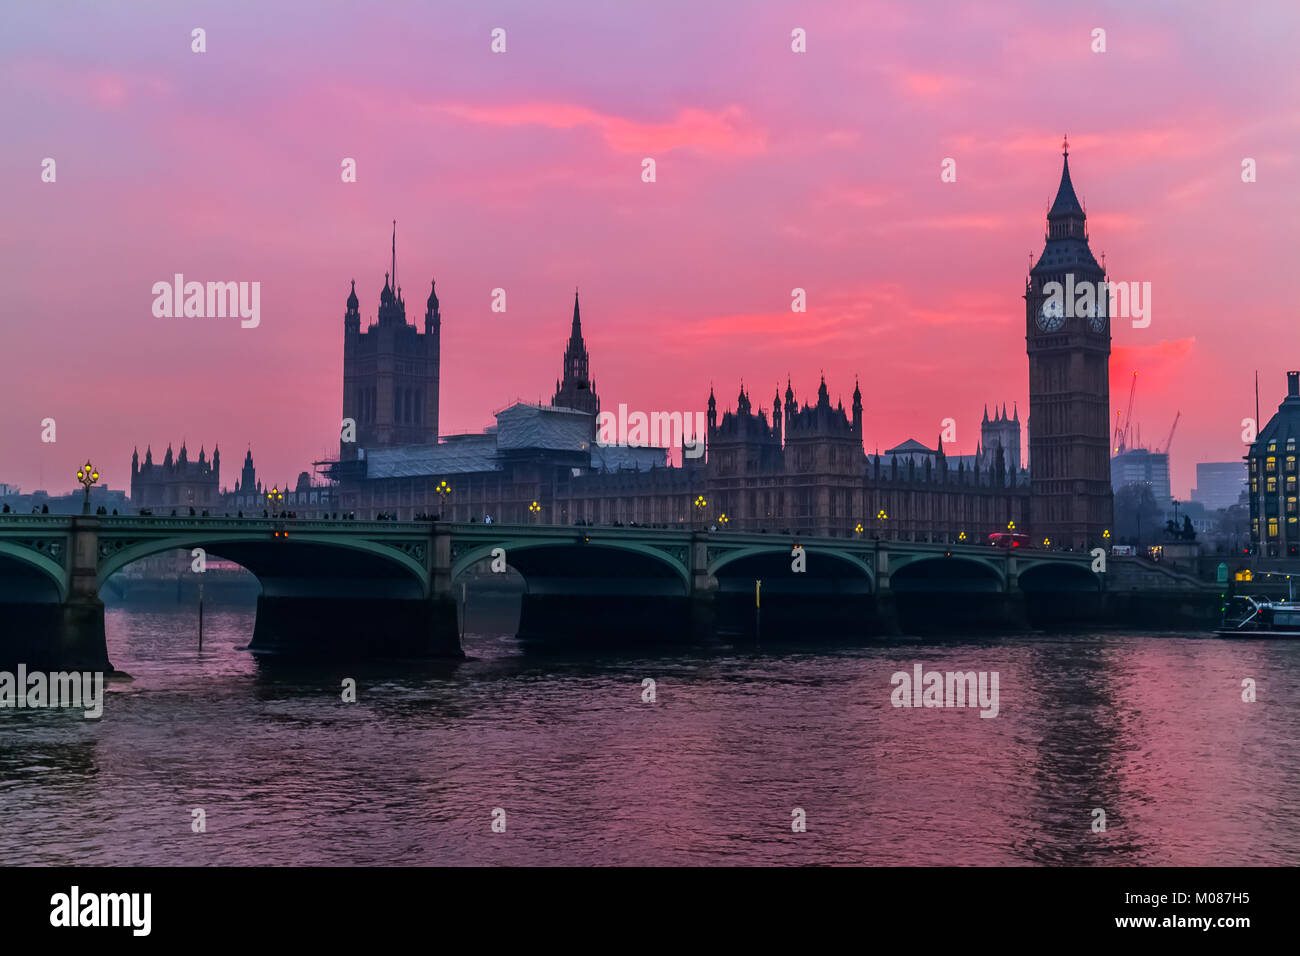 Big Ben, Houses of Parliament Stock Photo